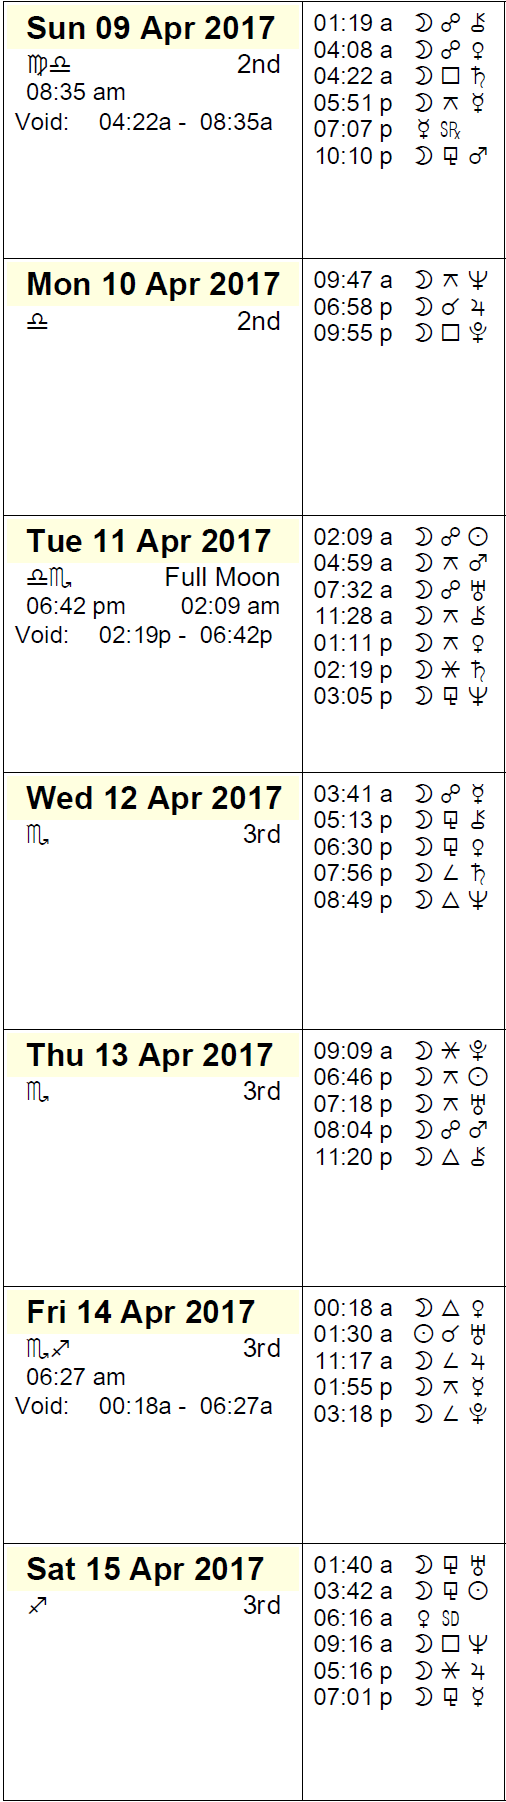 This Week in Astrology Calendar - April 9 to 15, 2017